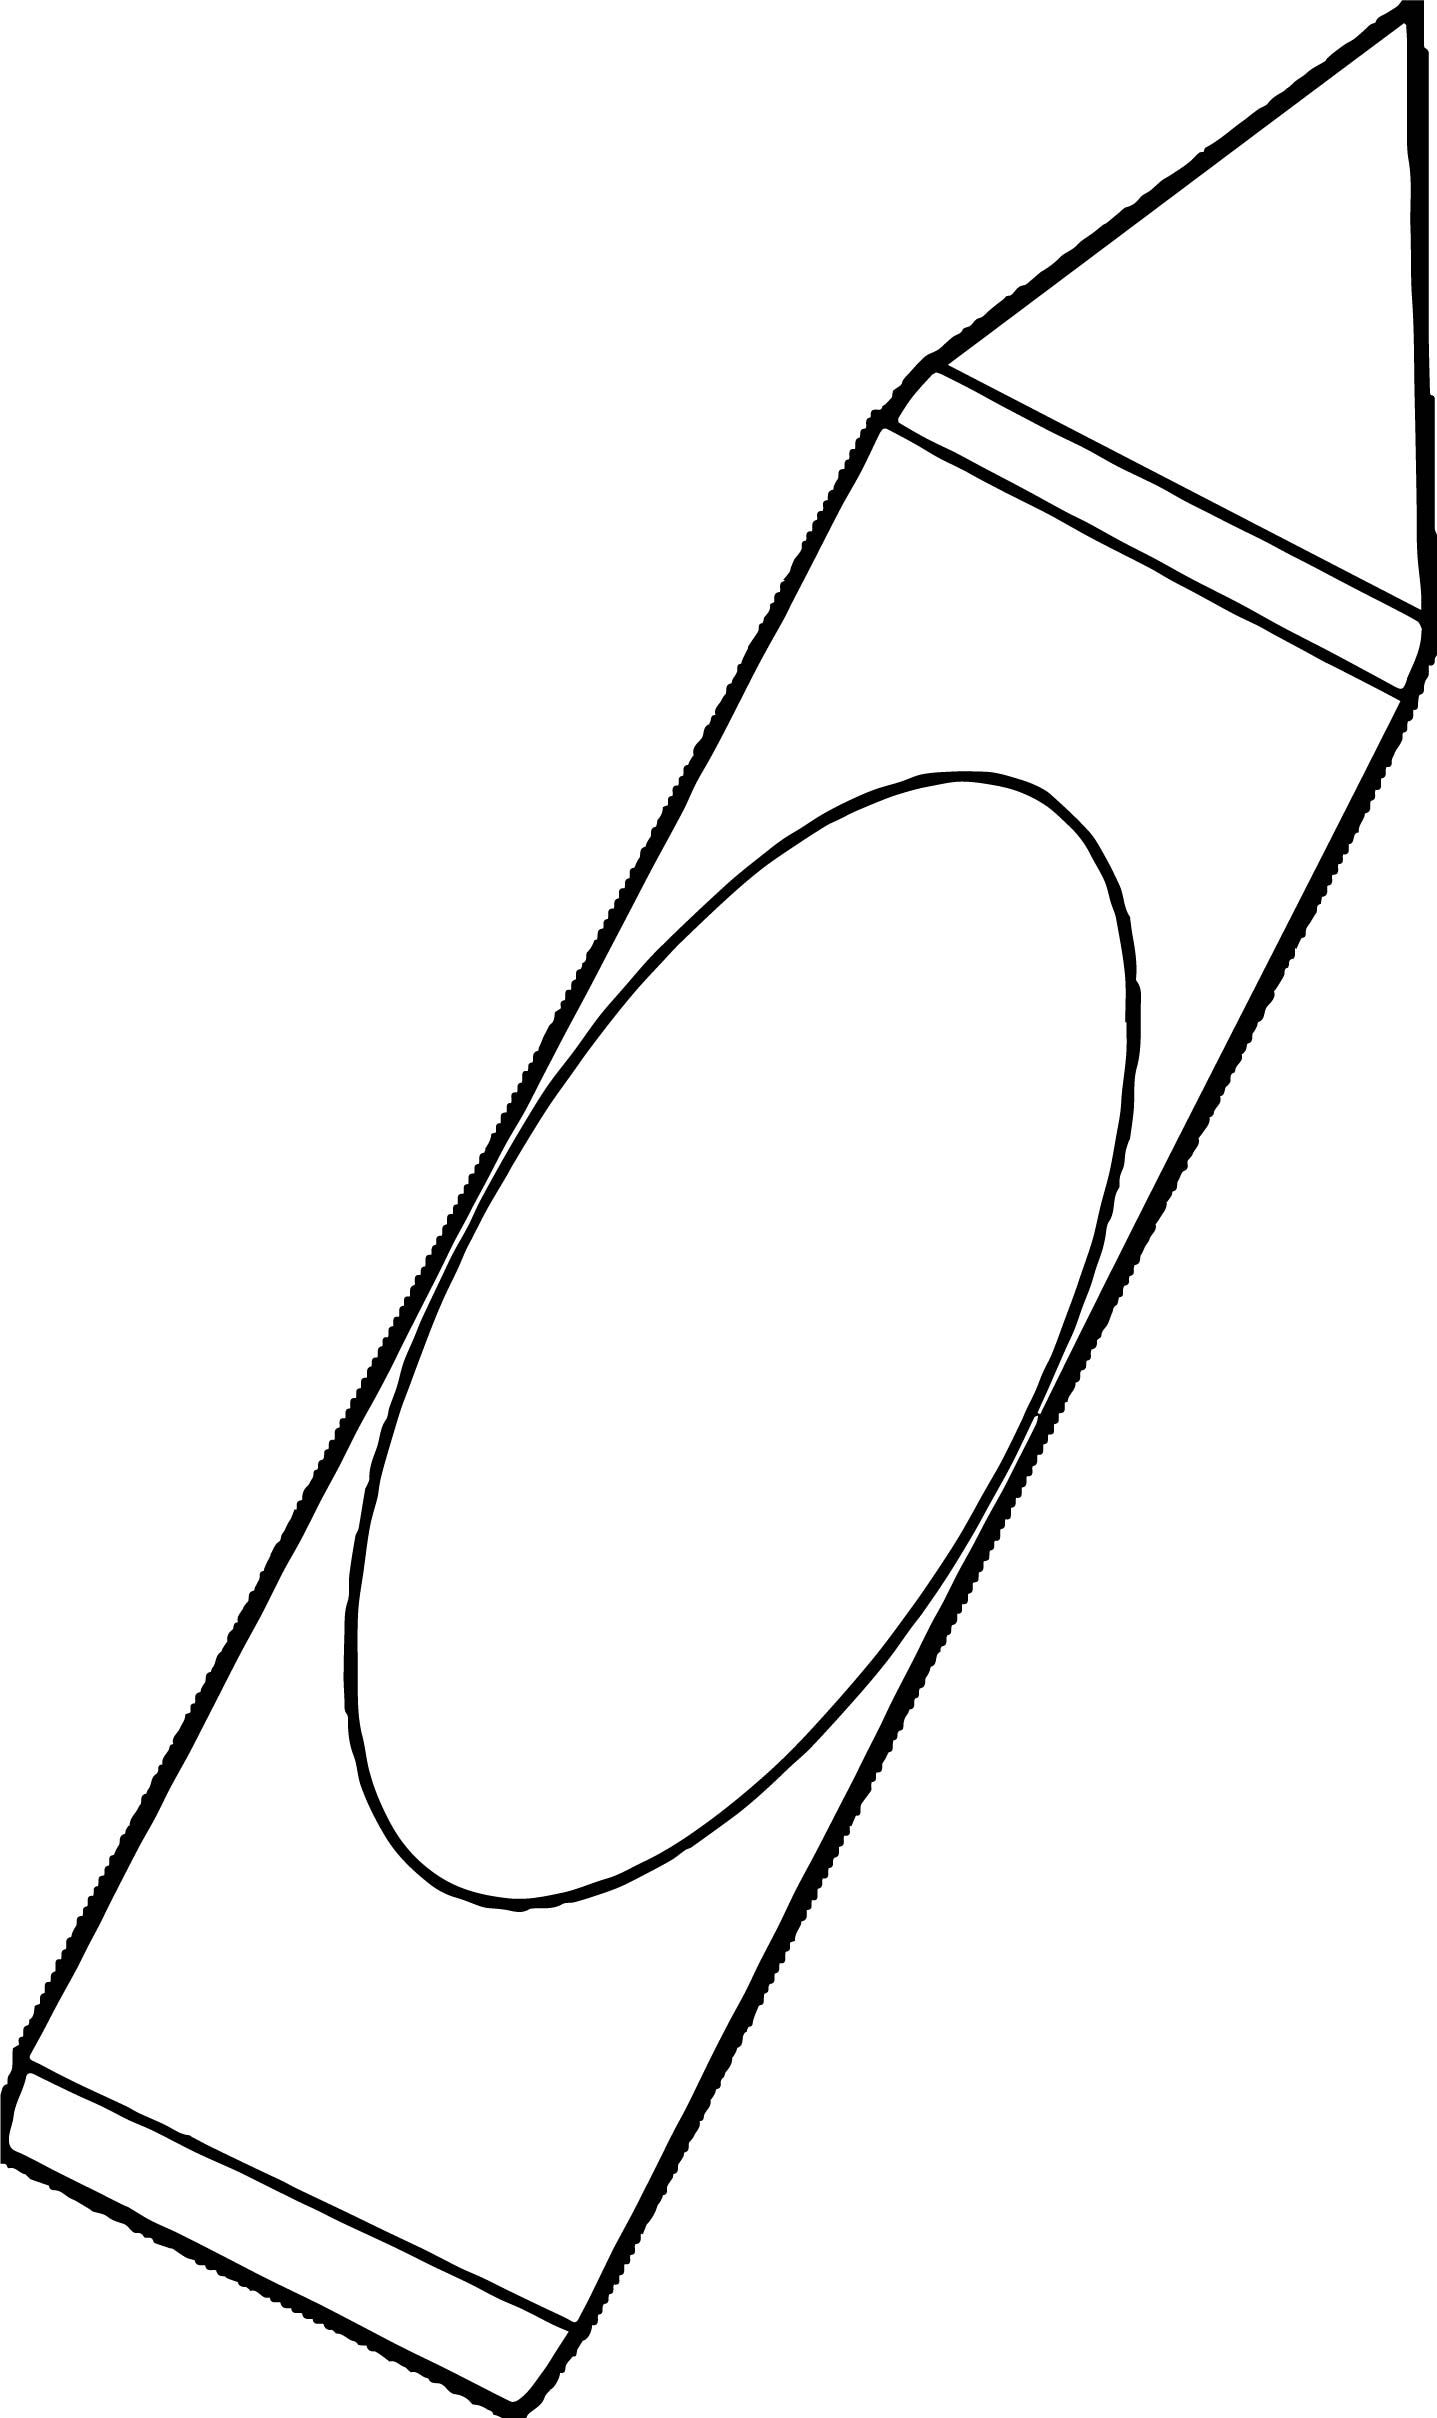 Crayon We Coloring Page 014